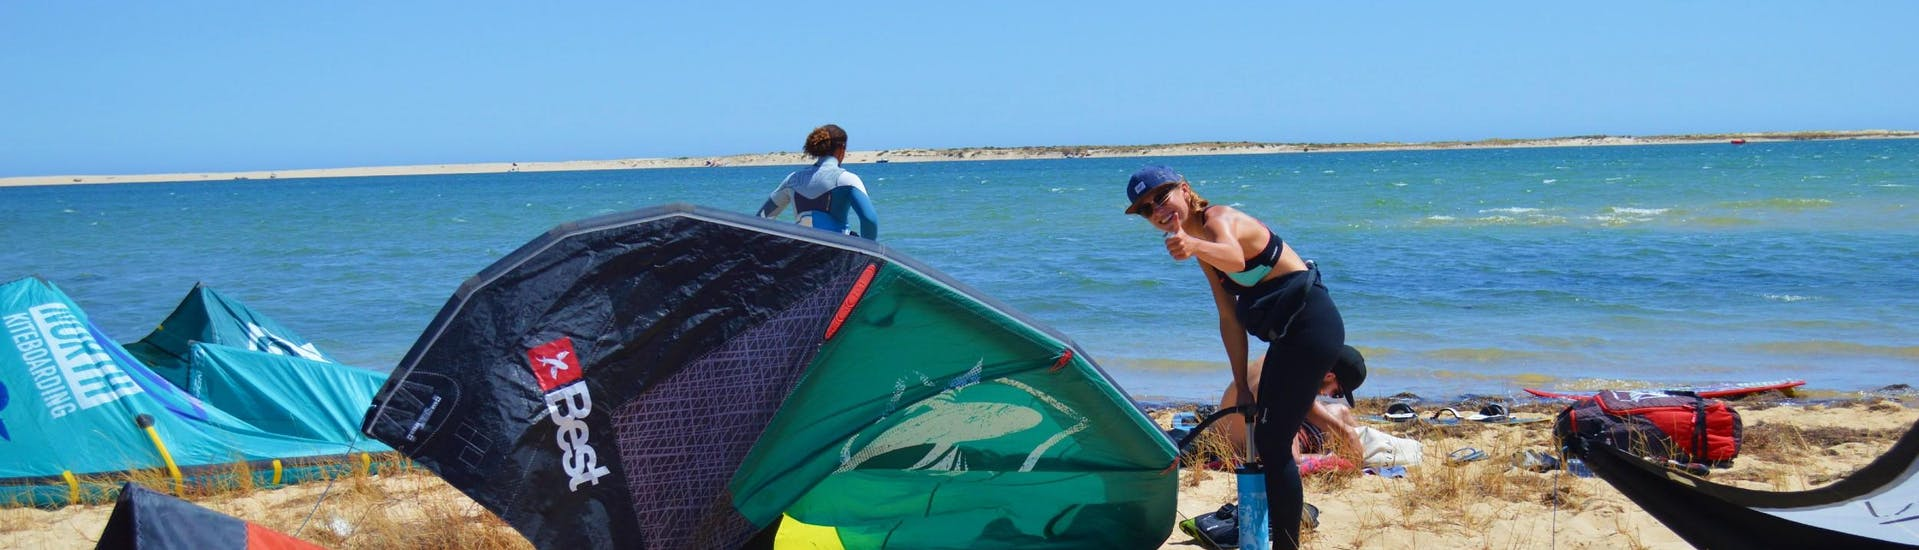 A participants of the kitesurfing lessons with Kite Culture Algarve is getting ready for her session on the Fuseta Lagoon.